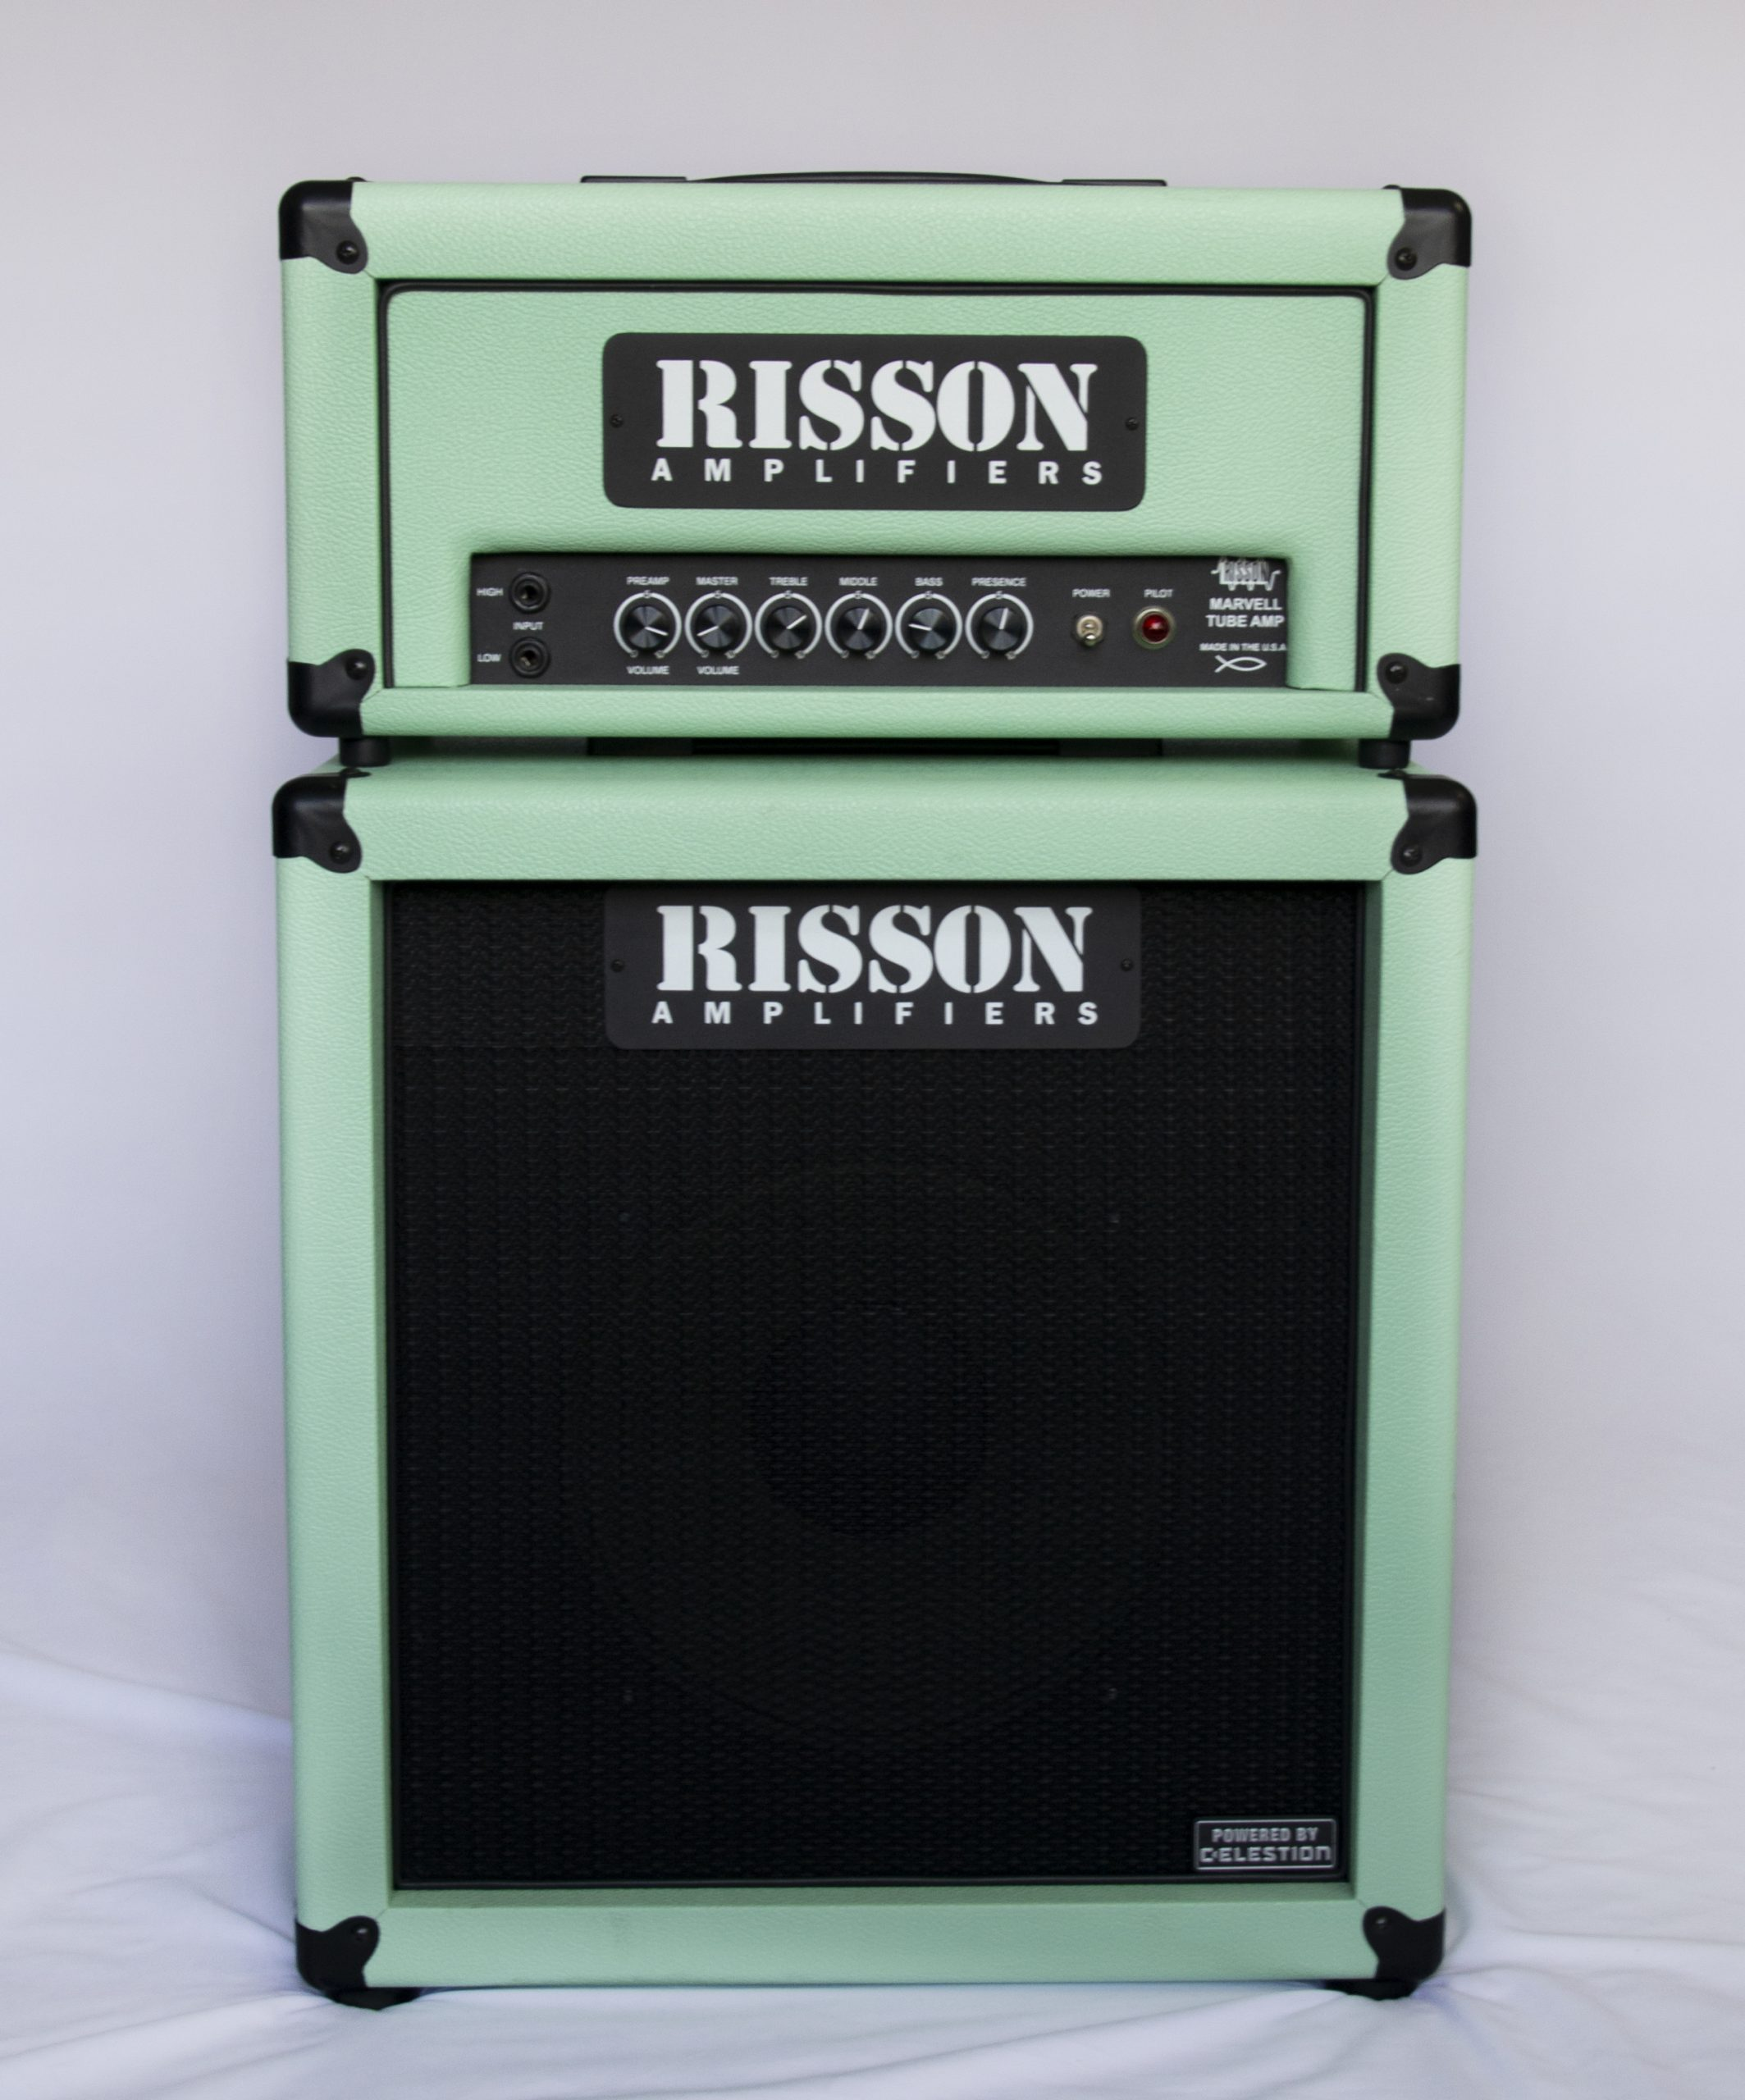 Risson AP40 Amplifier in Sea Foam Green with matching speaker cabinet